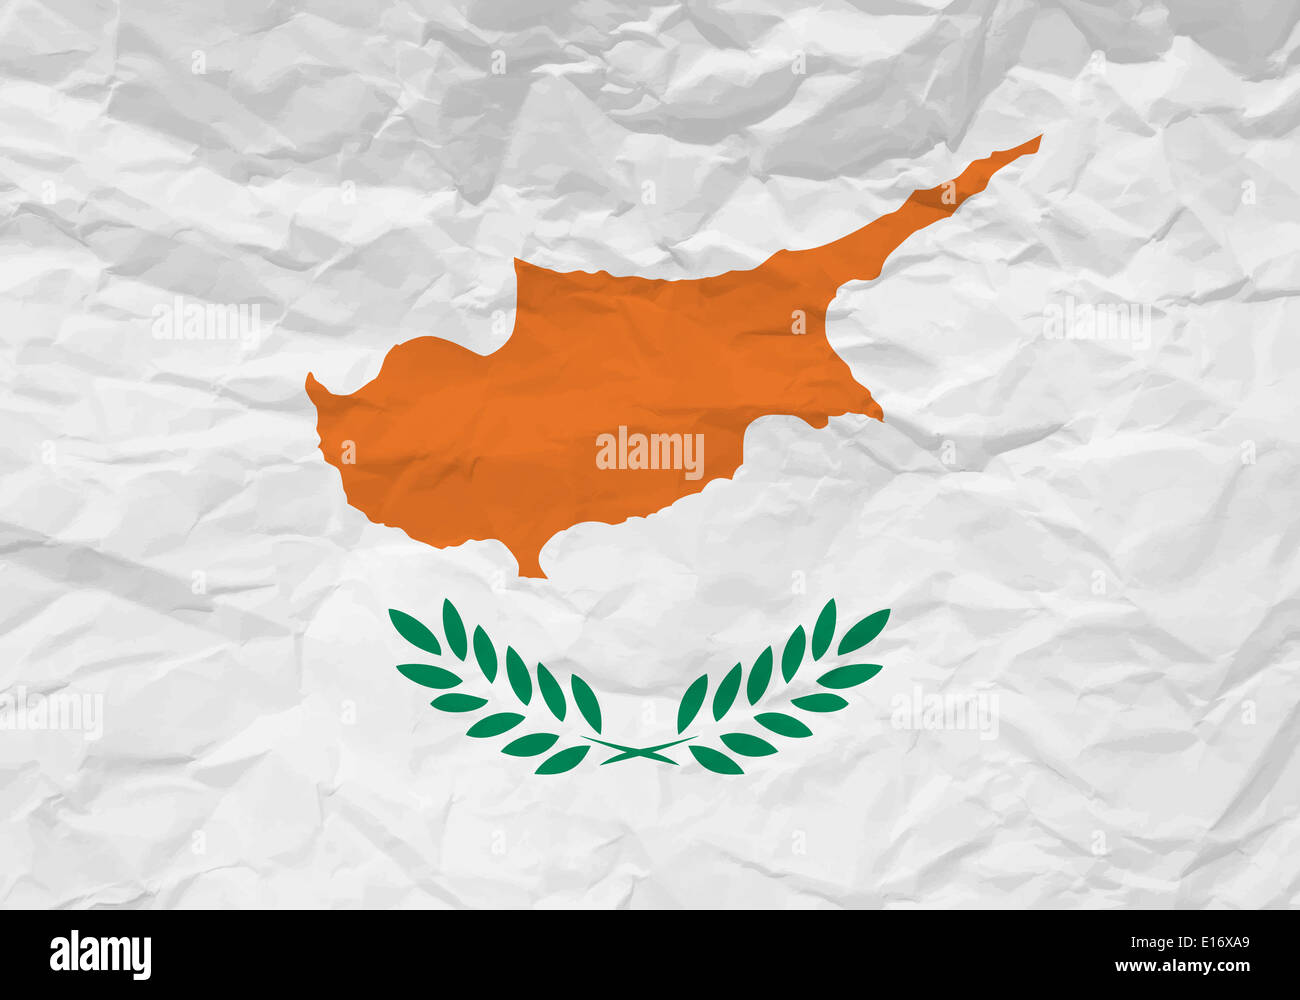 Cyprus flag crumpled paper textured background. Vector illustration. - Stock Image